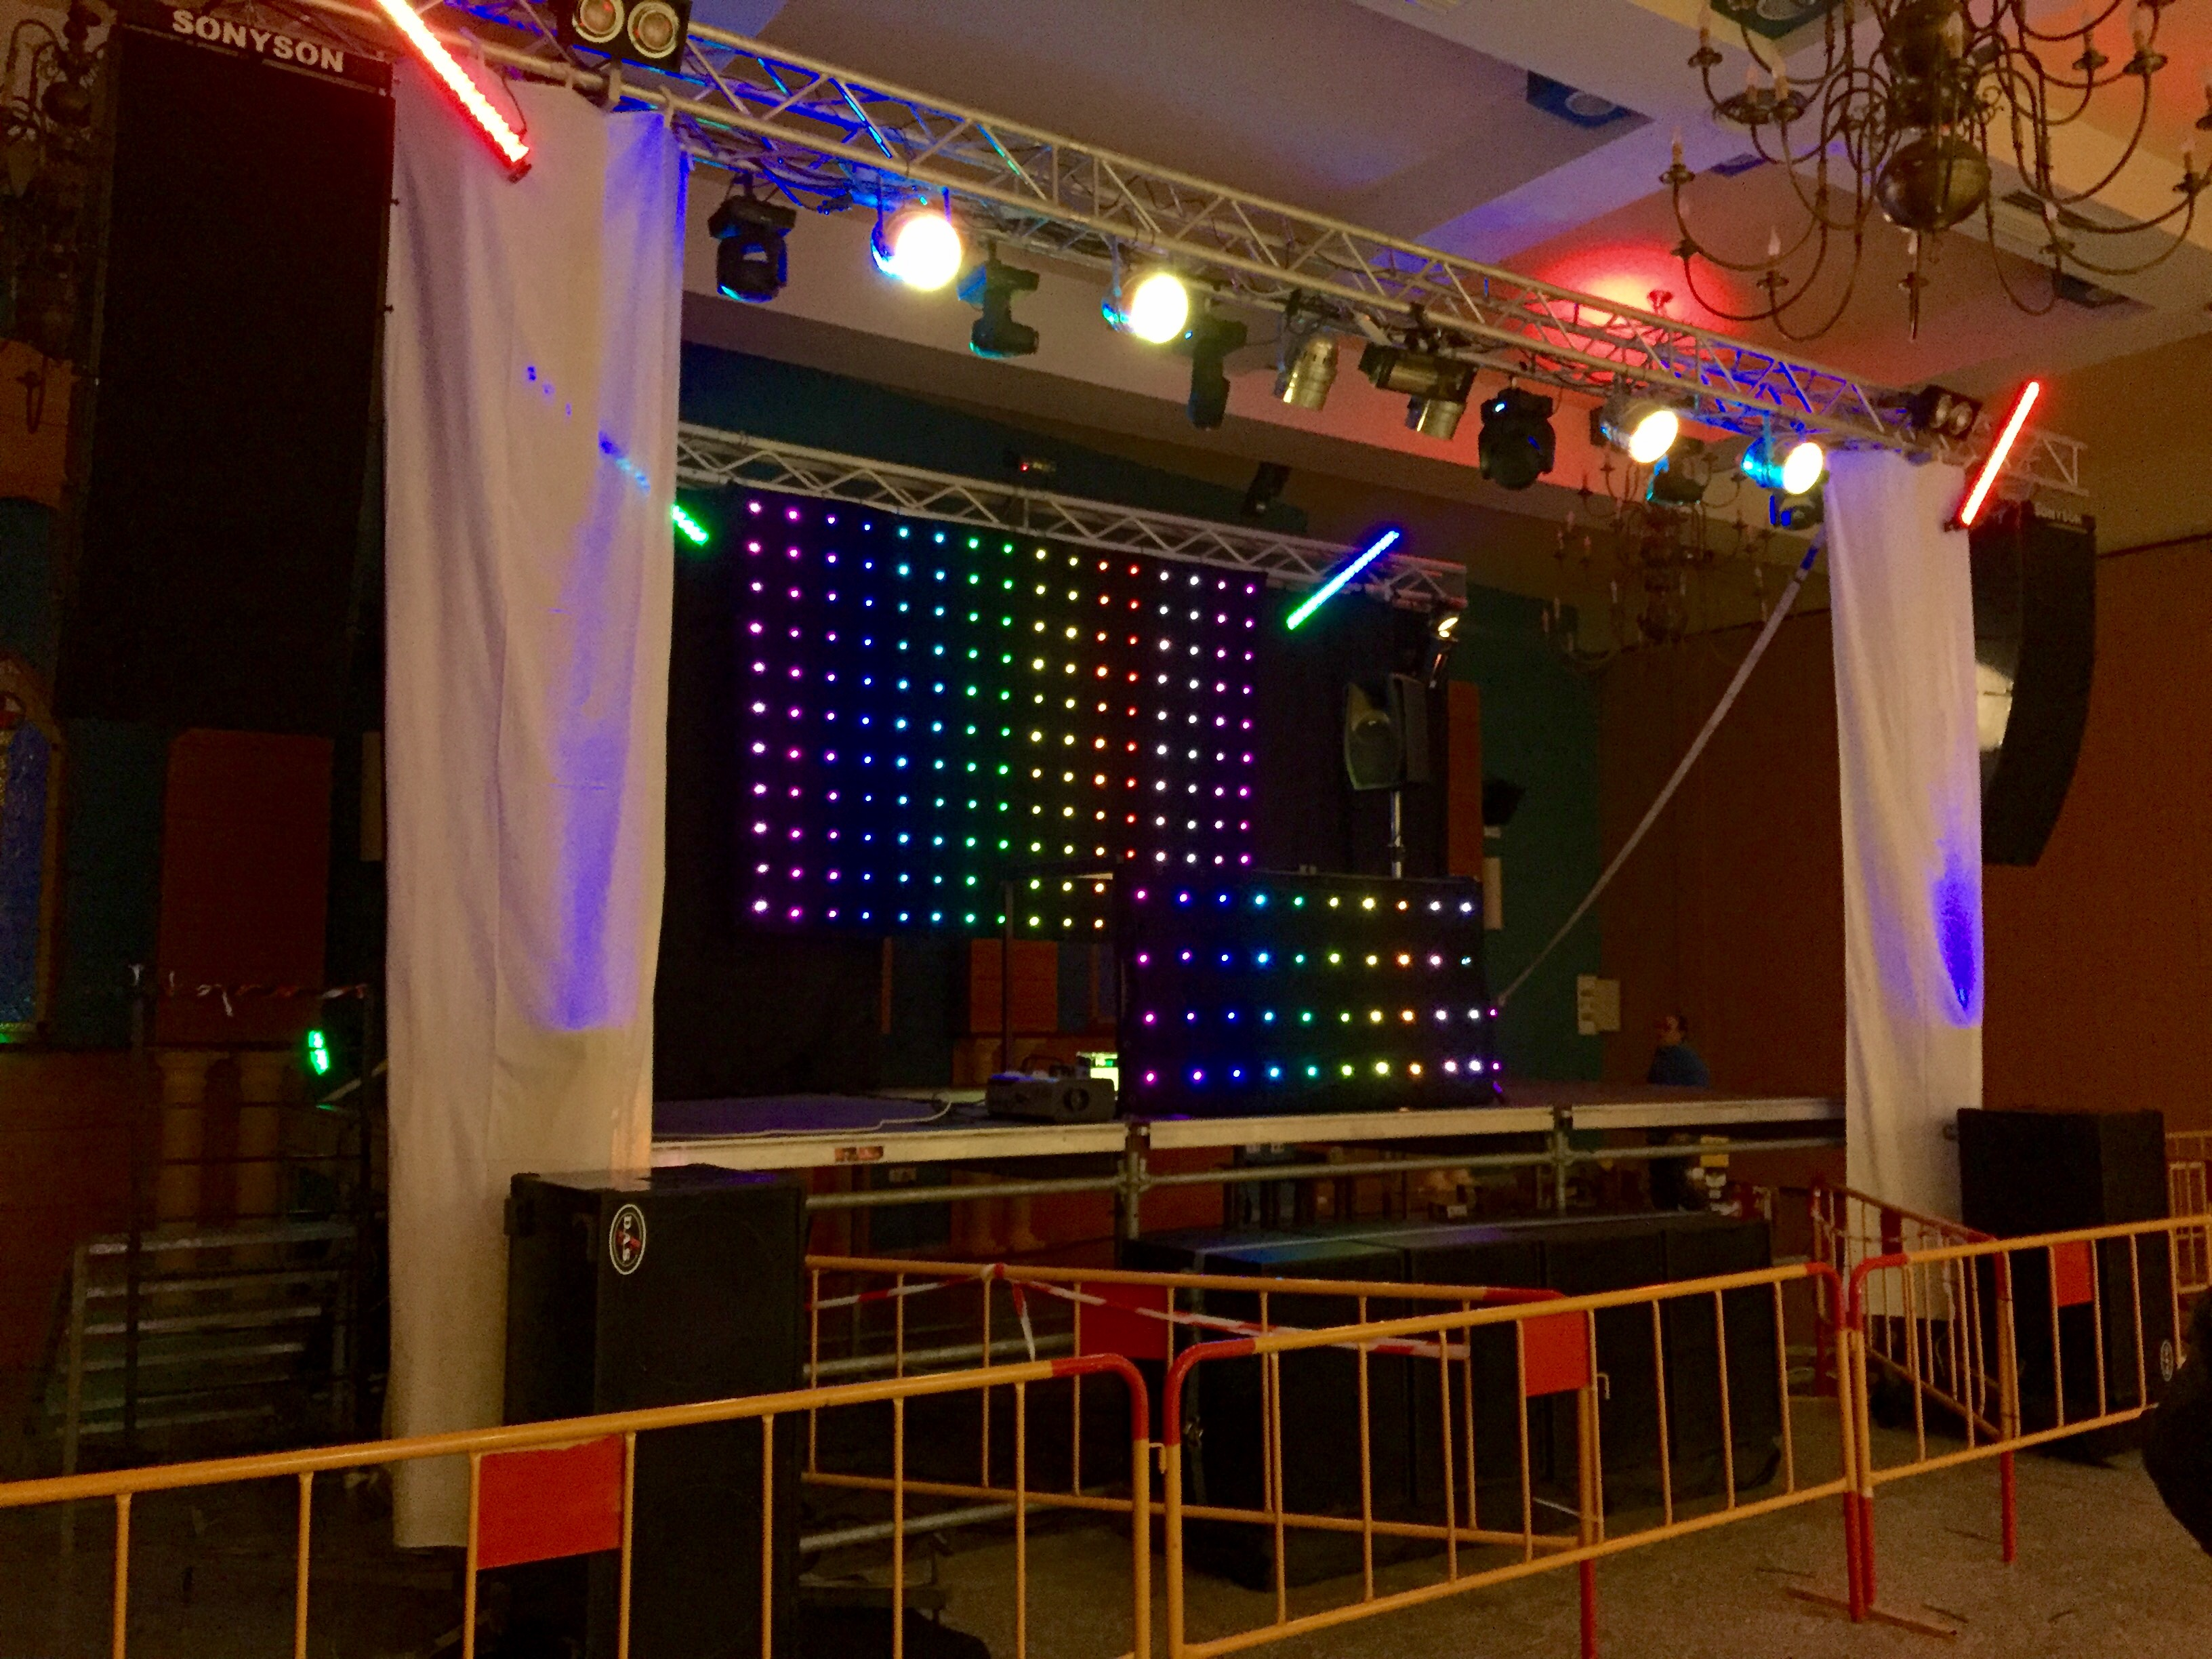 Line array y Cortinas Led - espectaculos sonyson